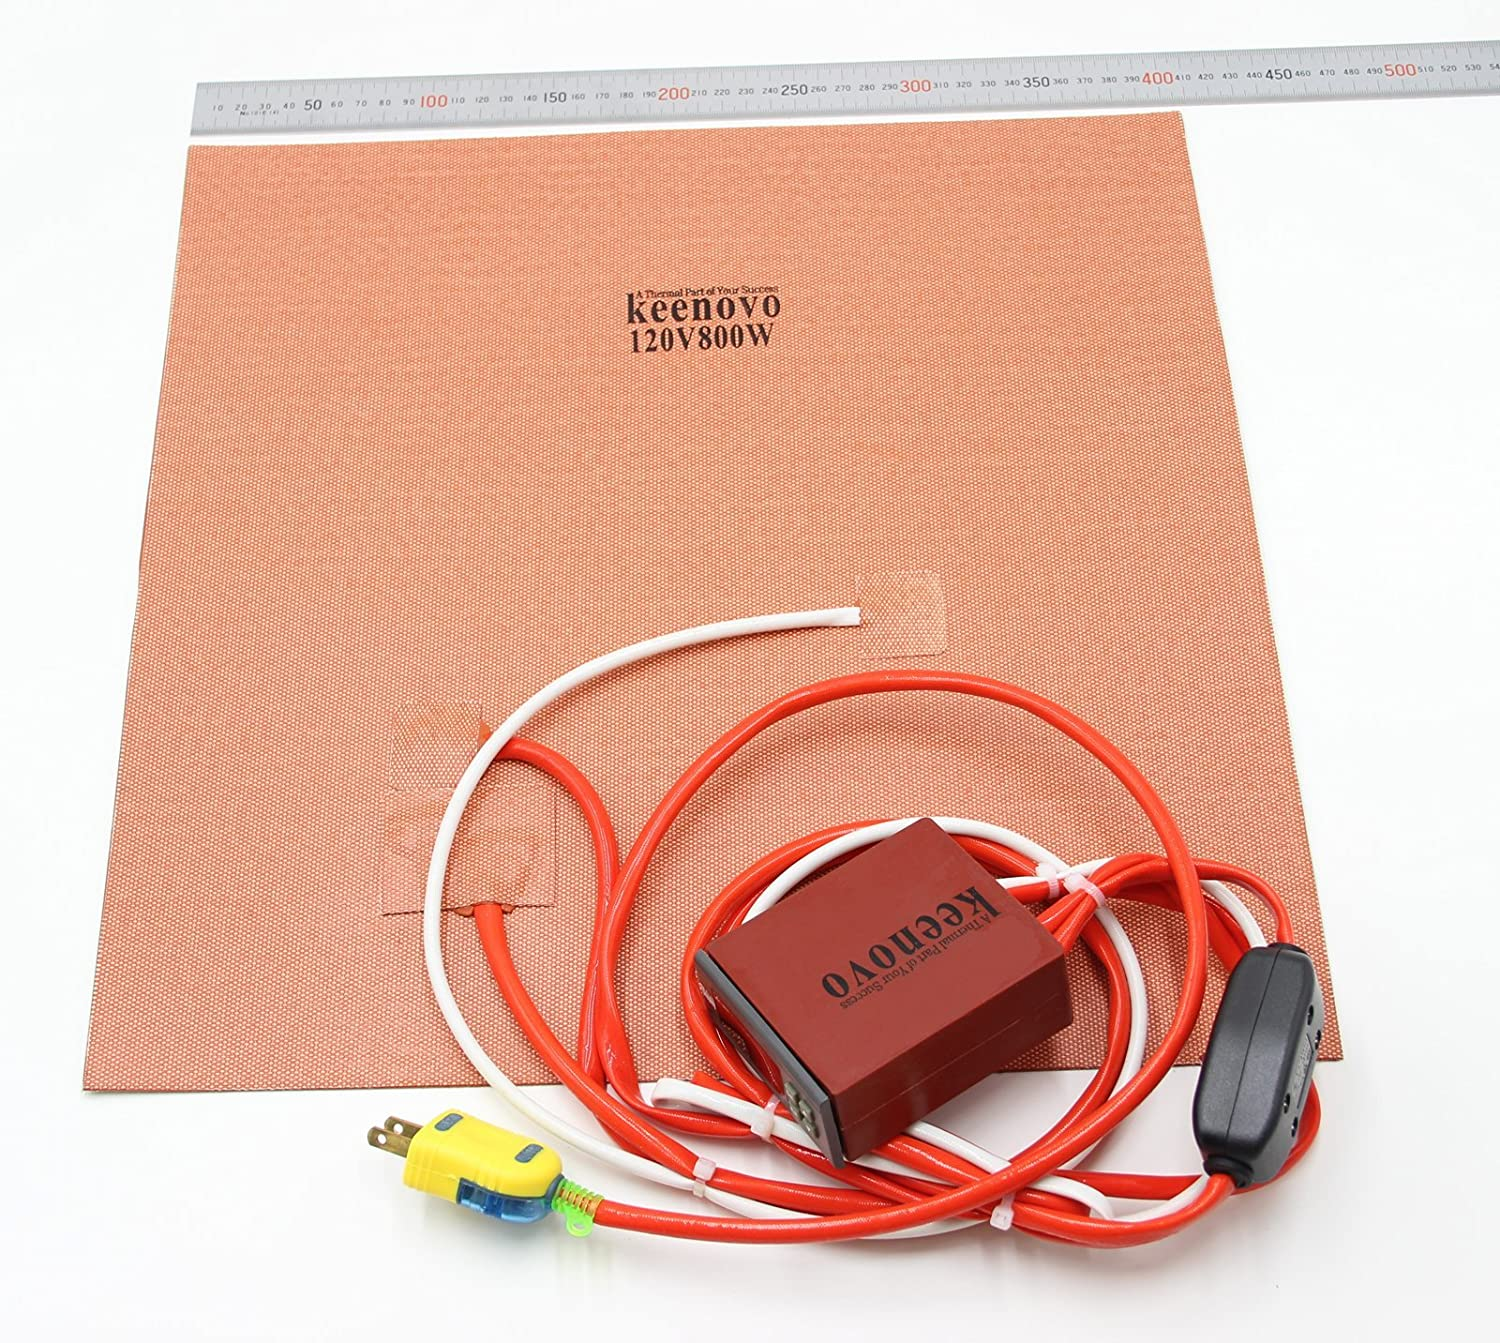 """Keenovo Silicone Heater gMax Style 3D Printer Heatbed Build Plate Heating Element 16"""" 120V Dual Heating Zones+Integrated Digital Controller & Plug"""